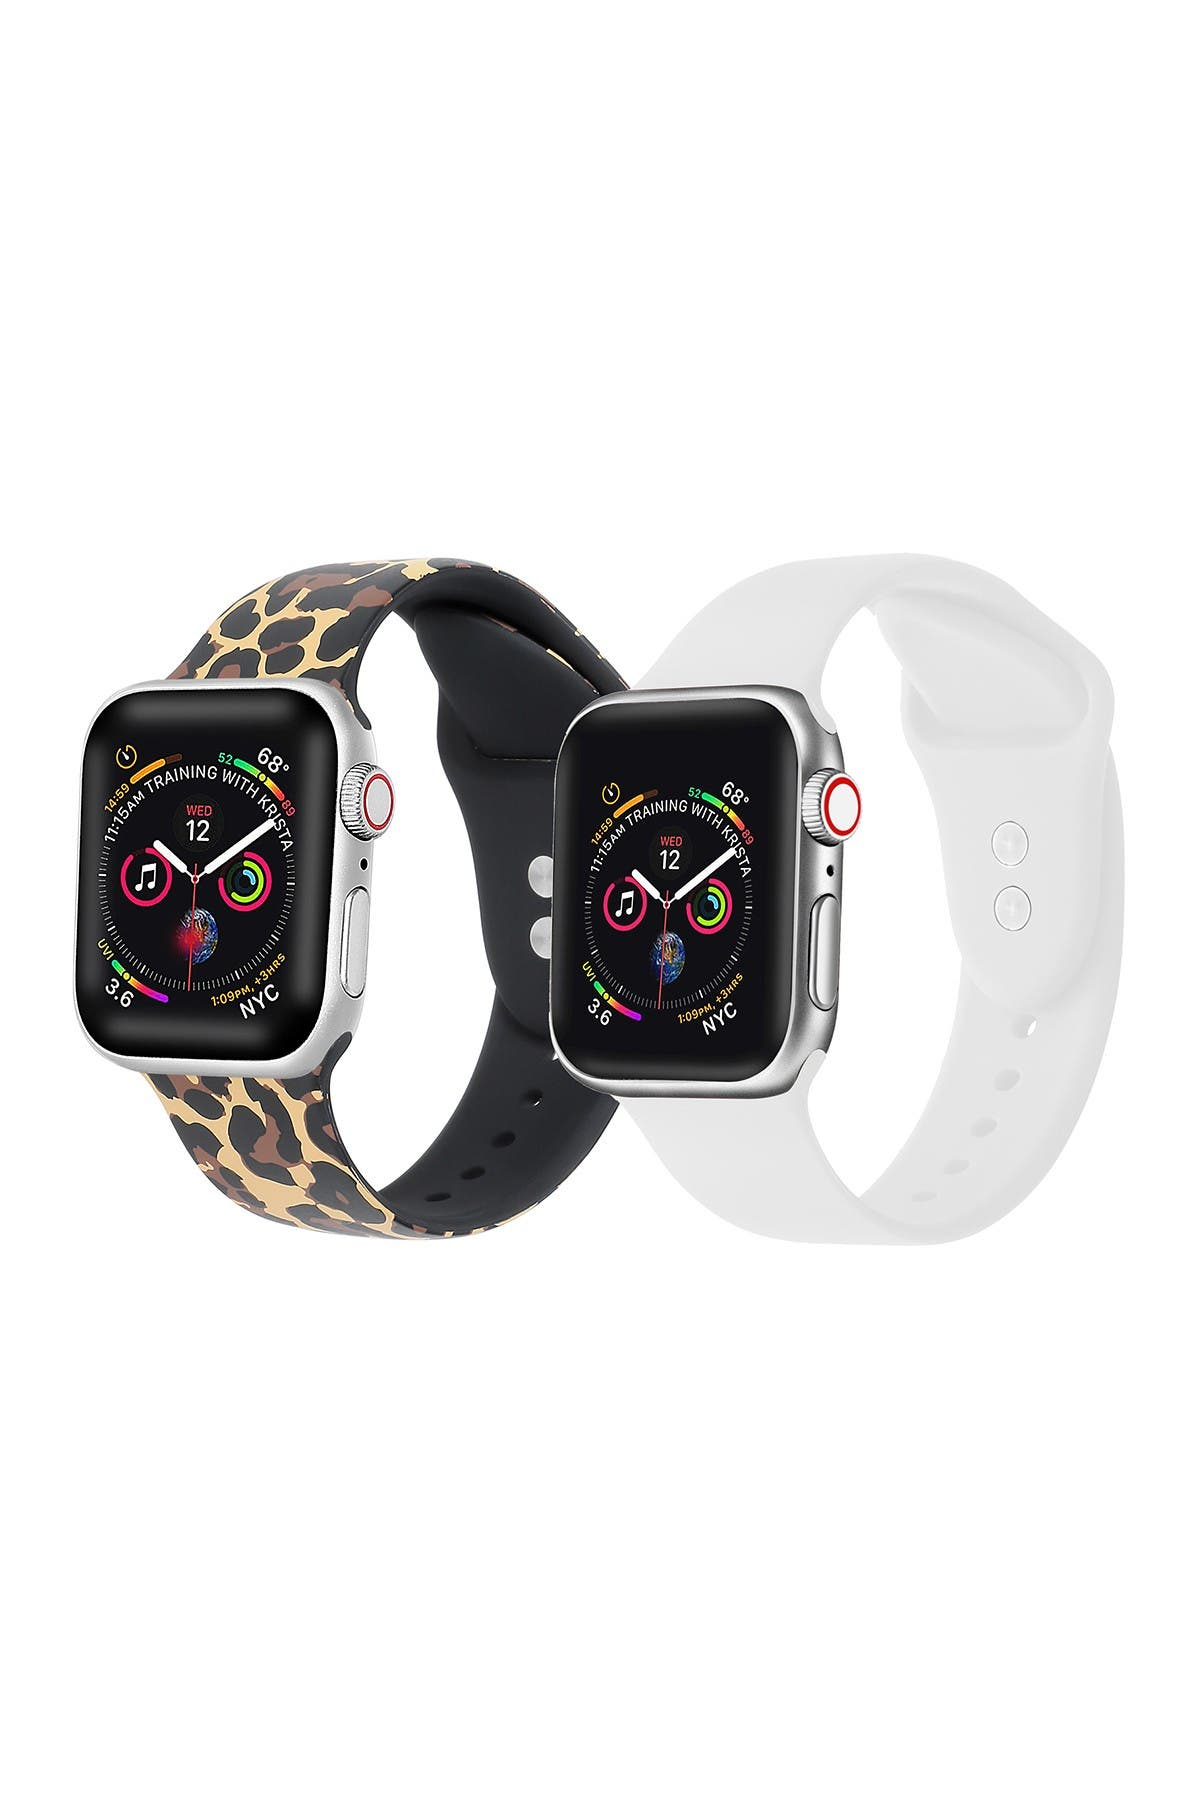 Image of POSH TECH Leopard/White Apple Watch Replacement Band - Set of 2